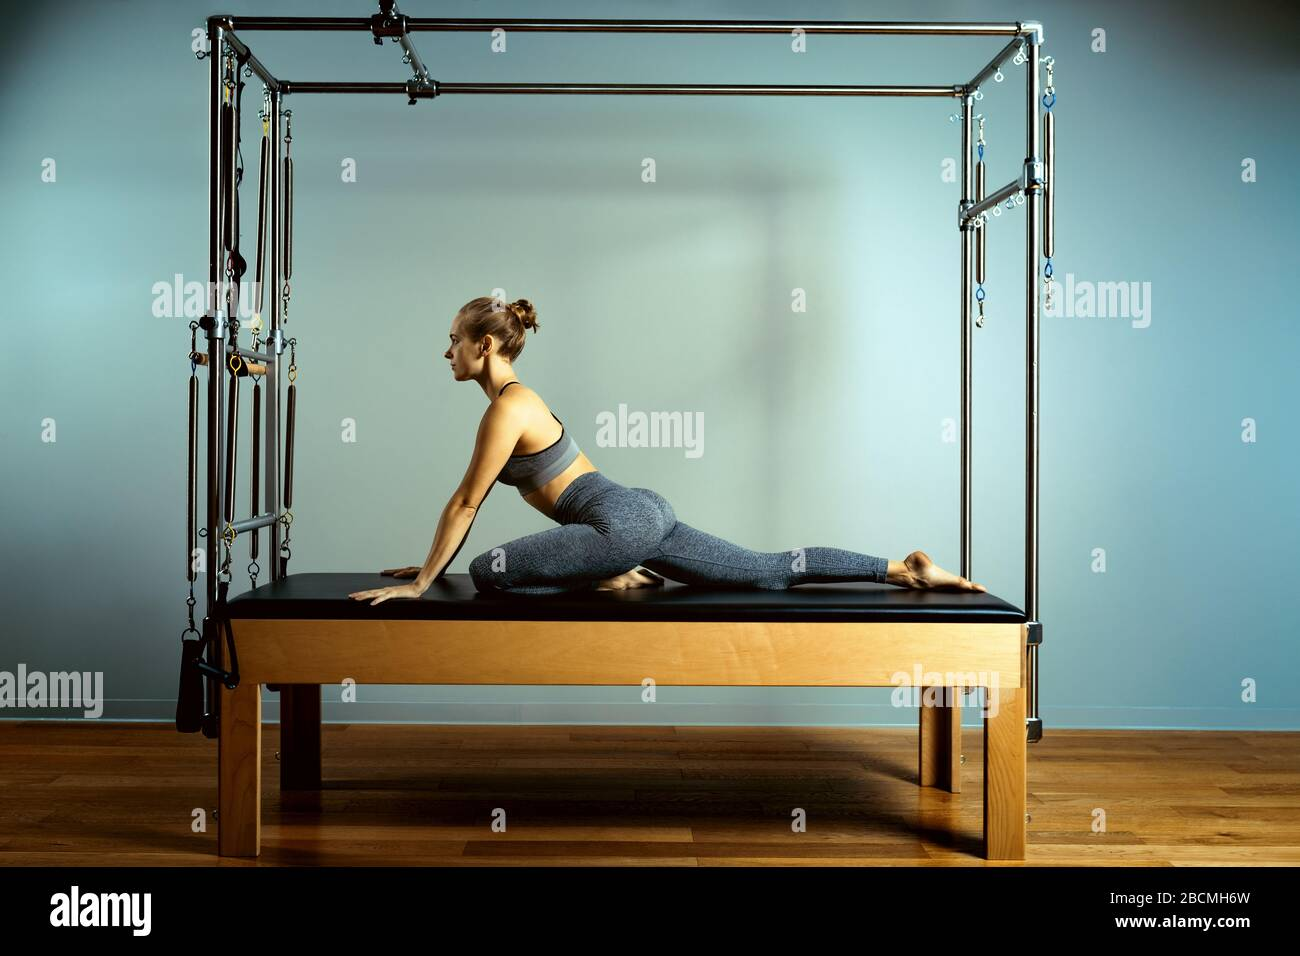 Body Art Pilates High Resolution Stock Photography And Images Alamy